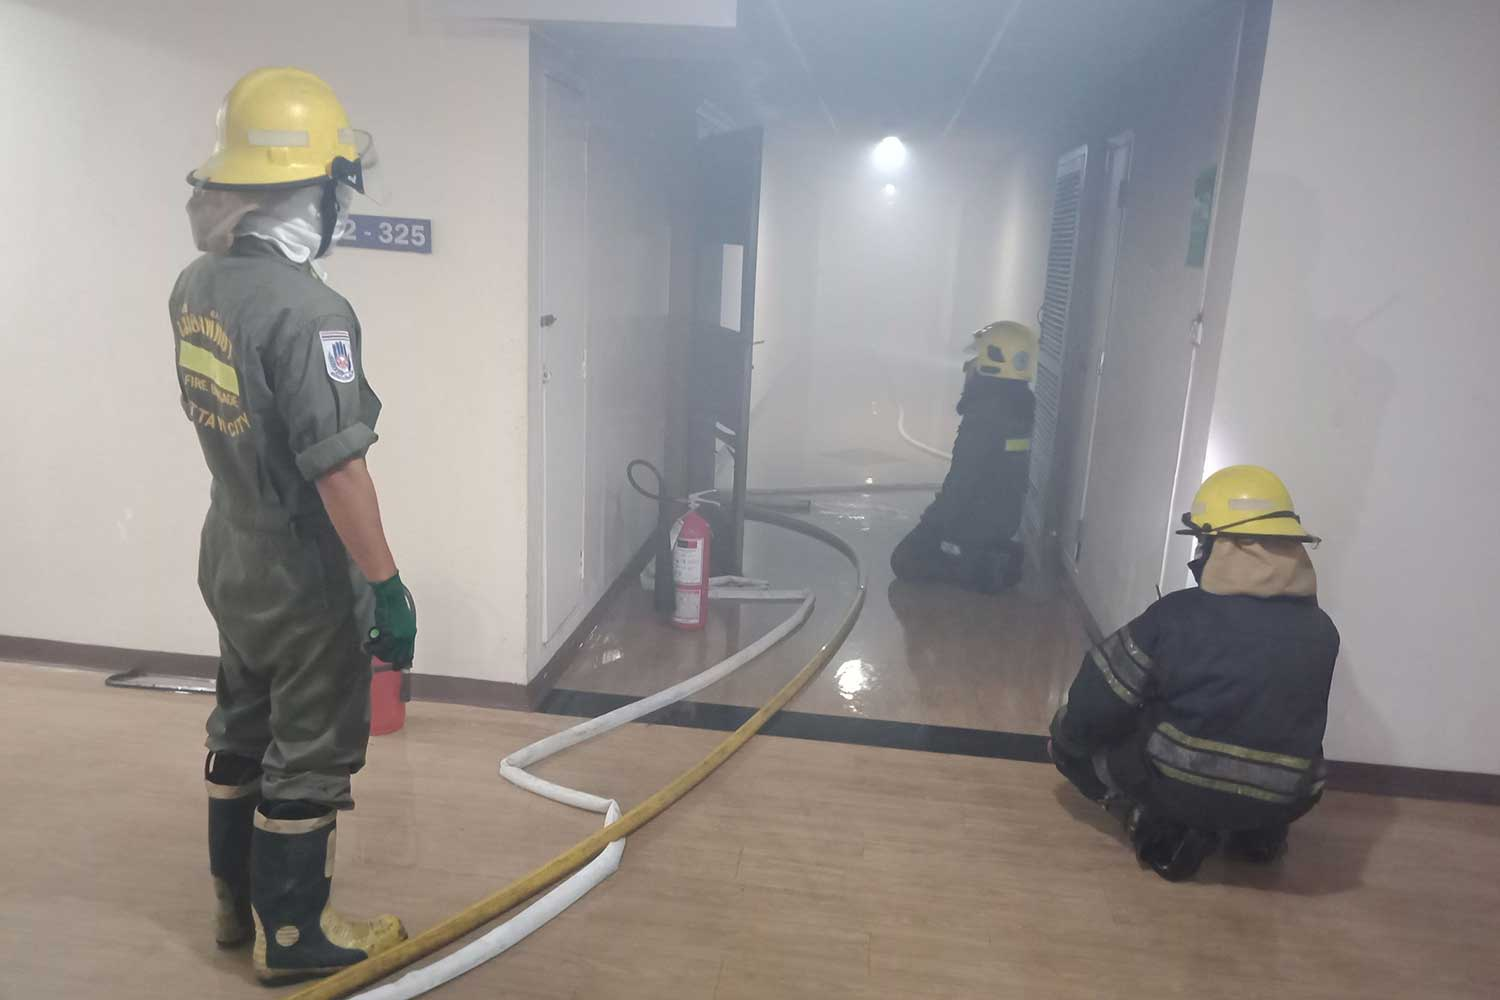 Smoke fills the corridor as firemen put out the blaze inside a room on the ninth floor of a 16-storey condominium building in Pattaya, Chon Buri, early Friday morning. A Norwegian man, 66, died inside his room. (Photo by Chaiyot Pupattanapong)